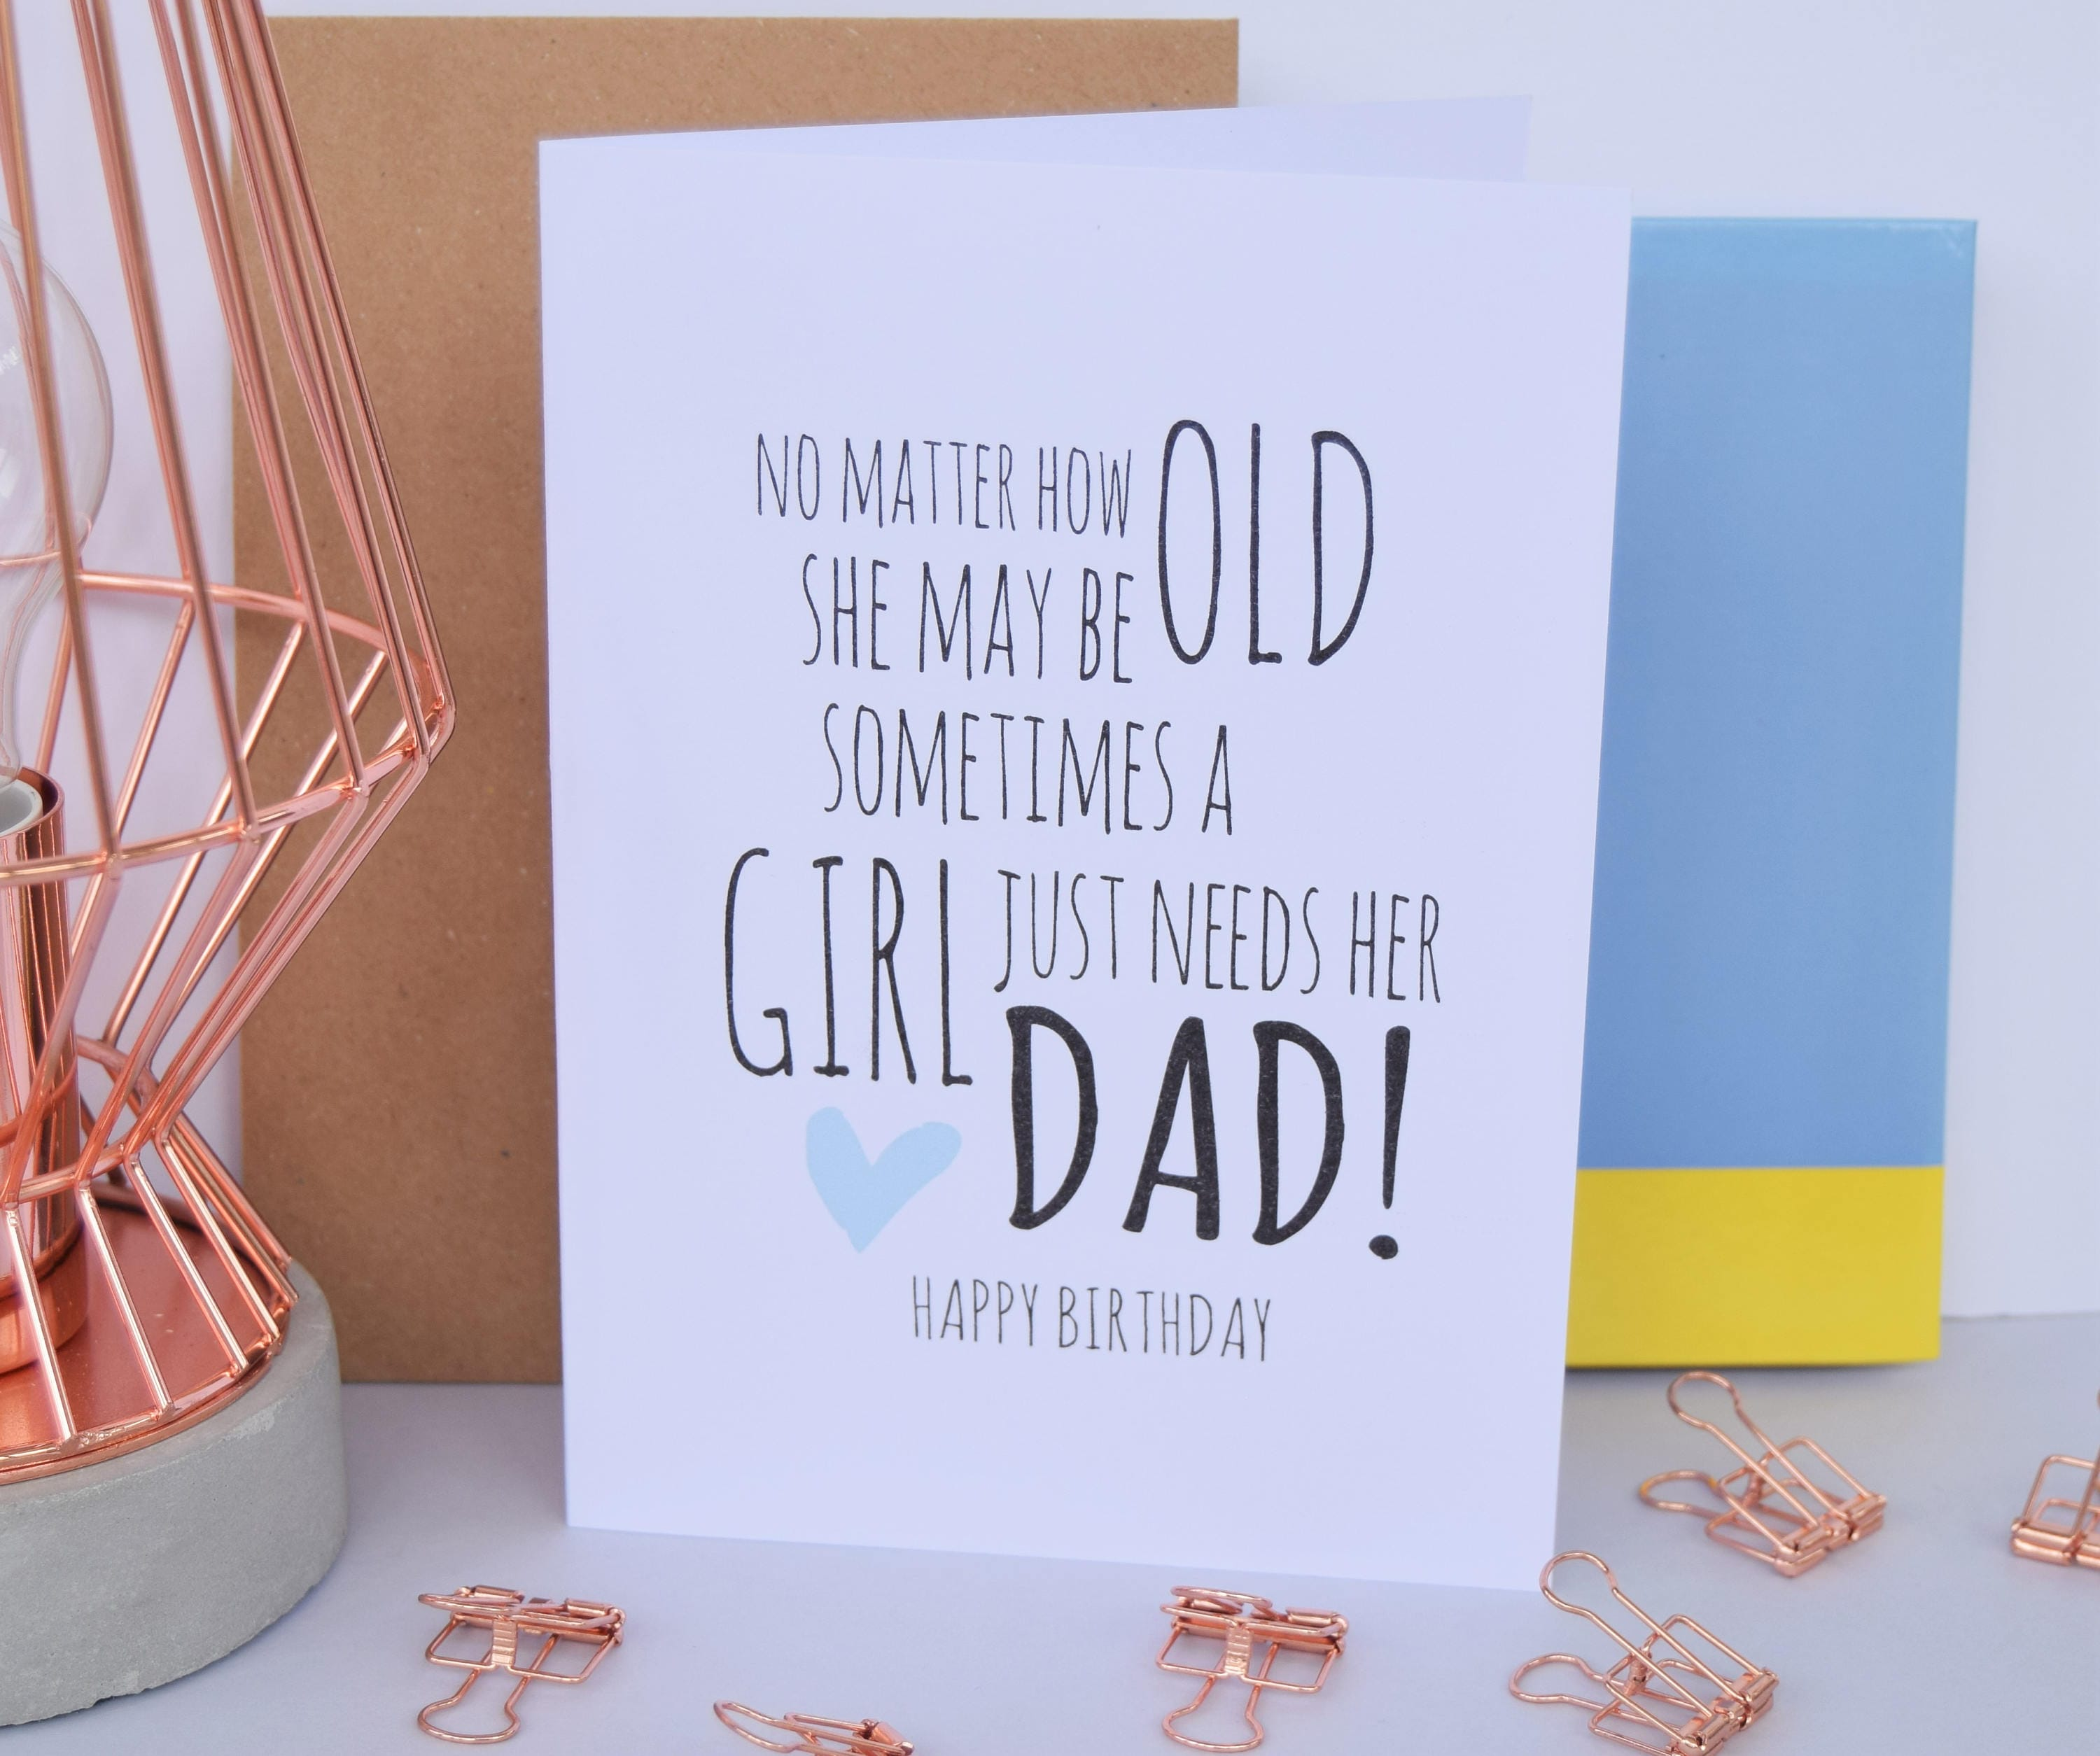 Dad Birthday Card A Girl Just Needs Her Dad Daughter Dad ...